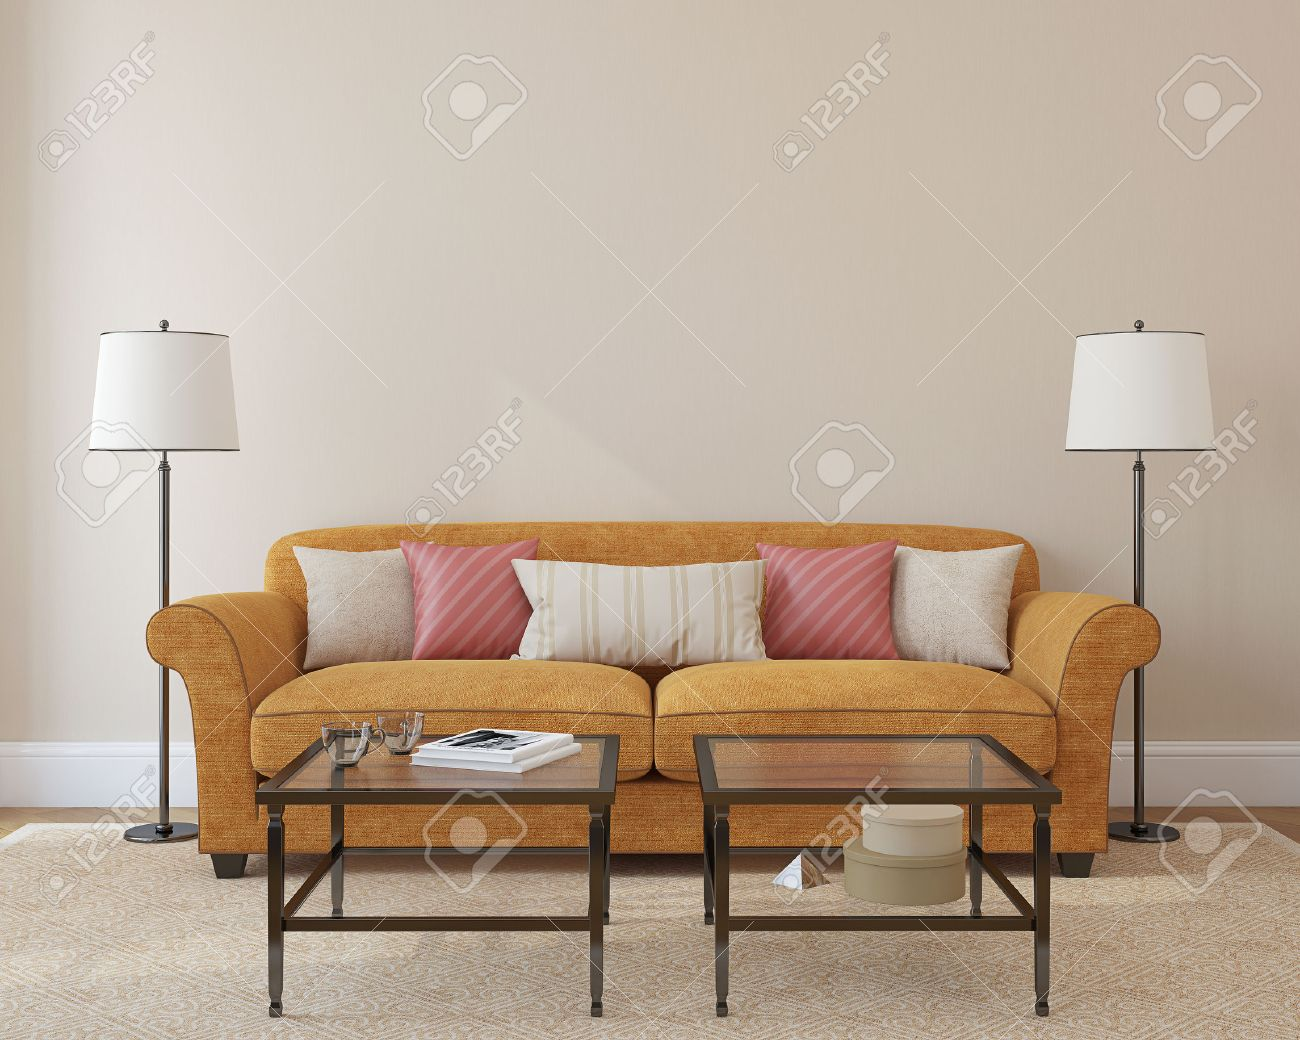 Orange Couch Living Room Modern Living Room Interior With Orange Couch Near Empty Beige